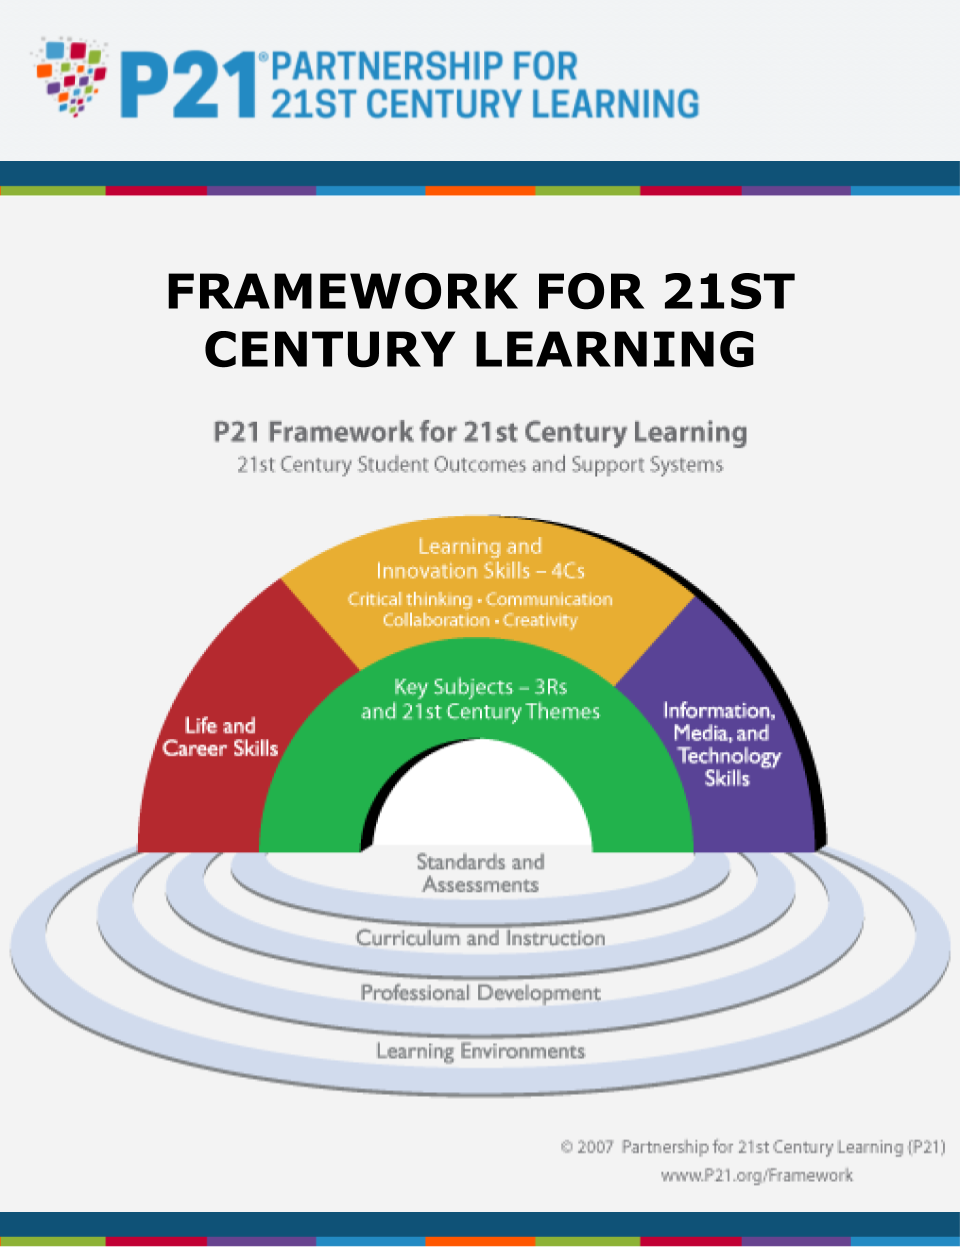 P21 S Framework For 21st Century Learning Was Developed With Input From Teachers Education Expert 21st Century Learning 21st Century Skills Learning Framework